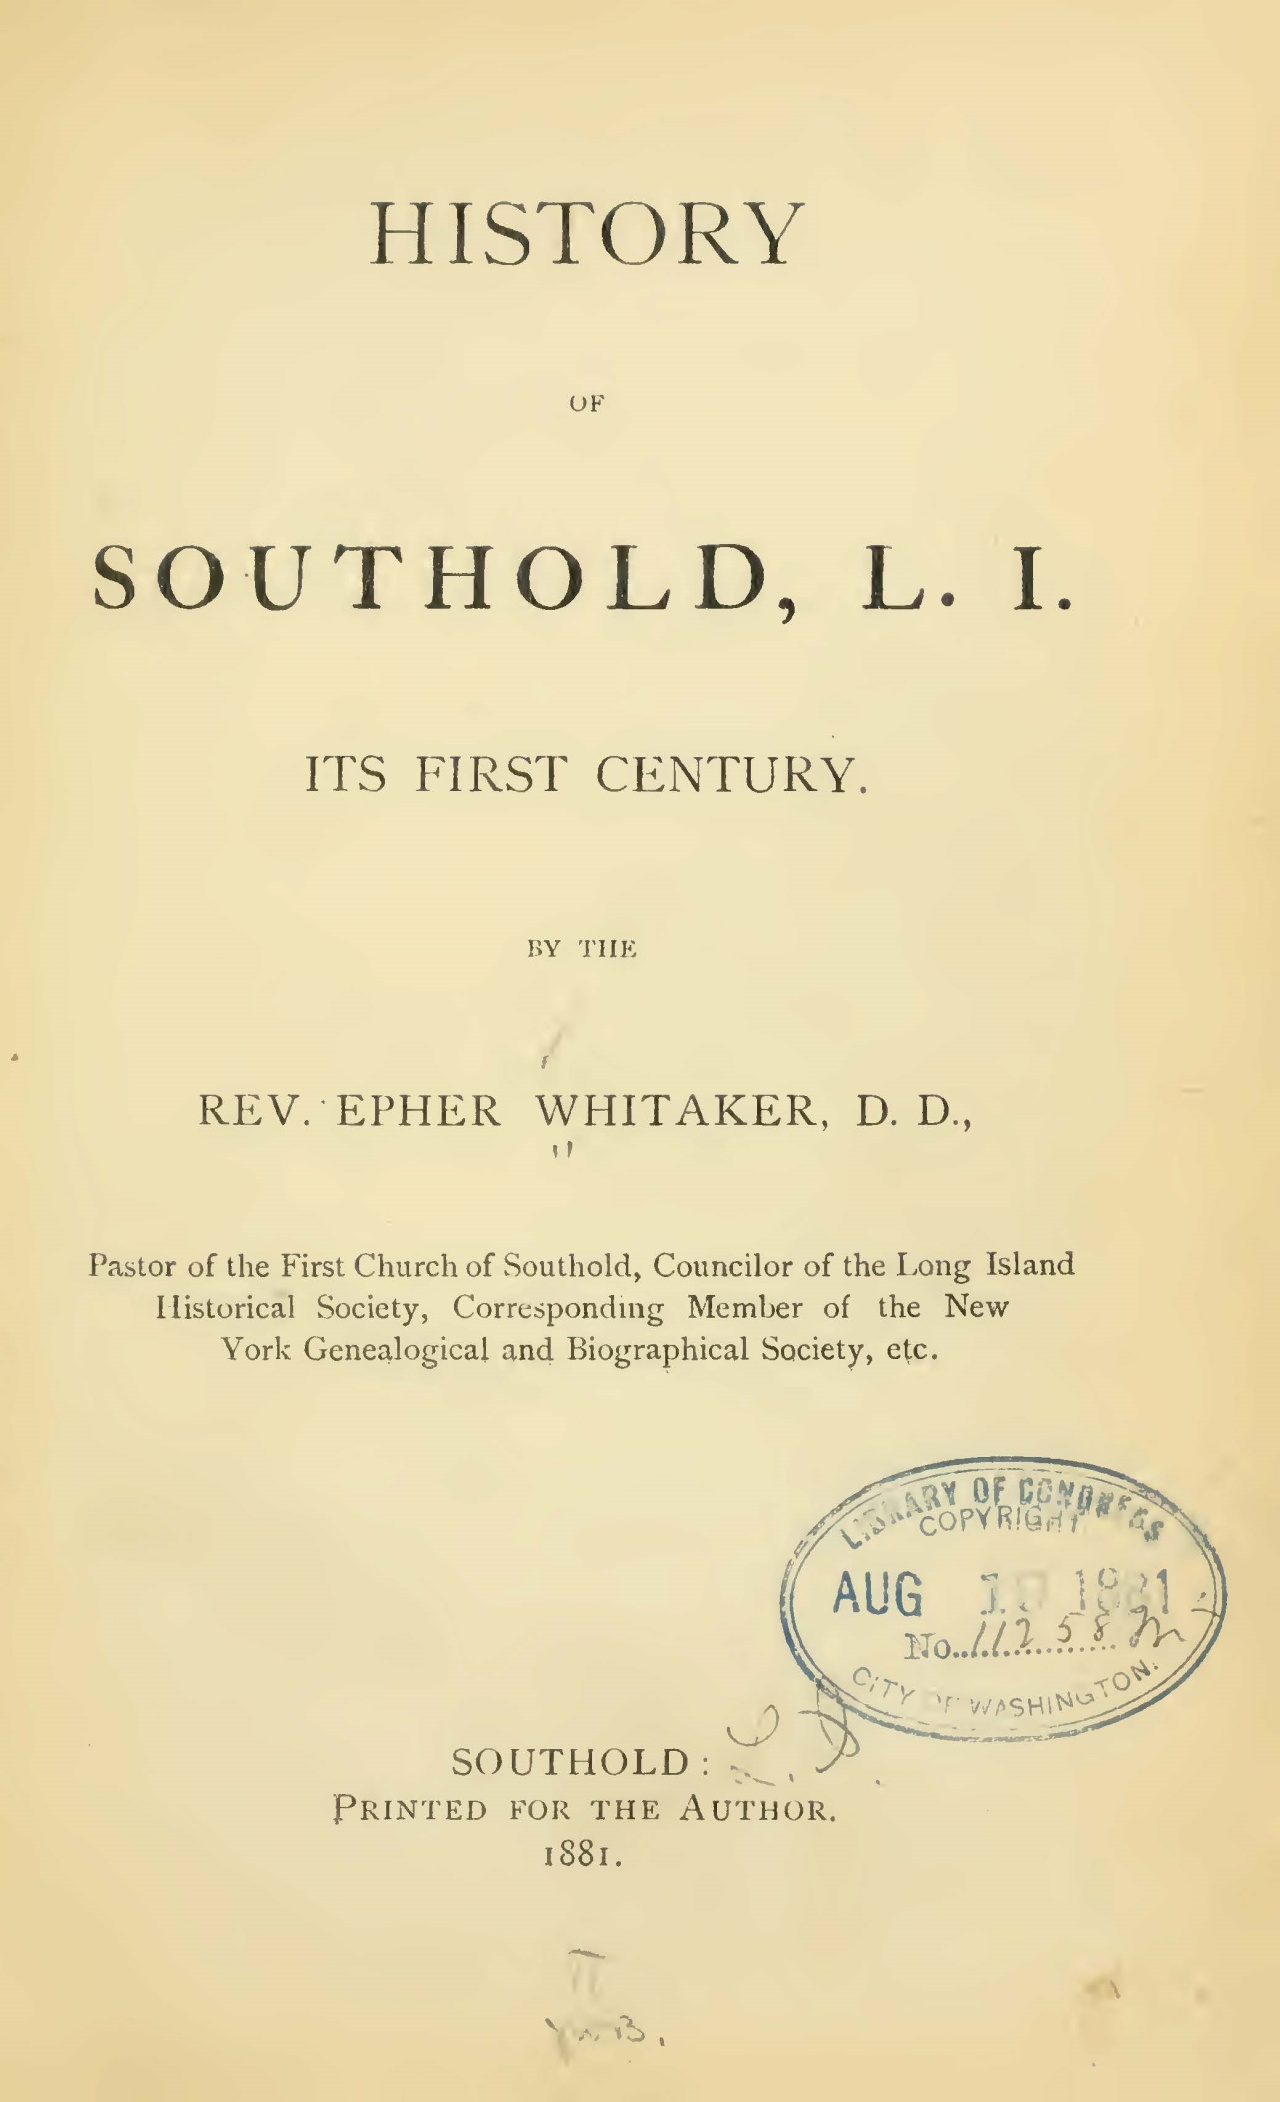 Whitaker, Epher, History of Southold, L.I. Title Page.jpg